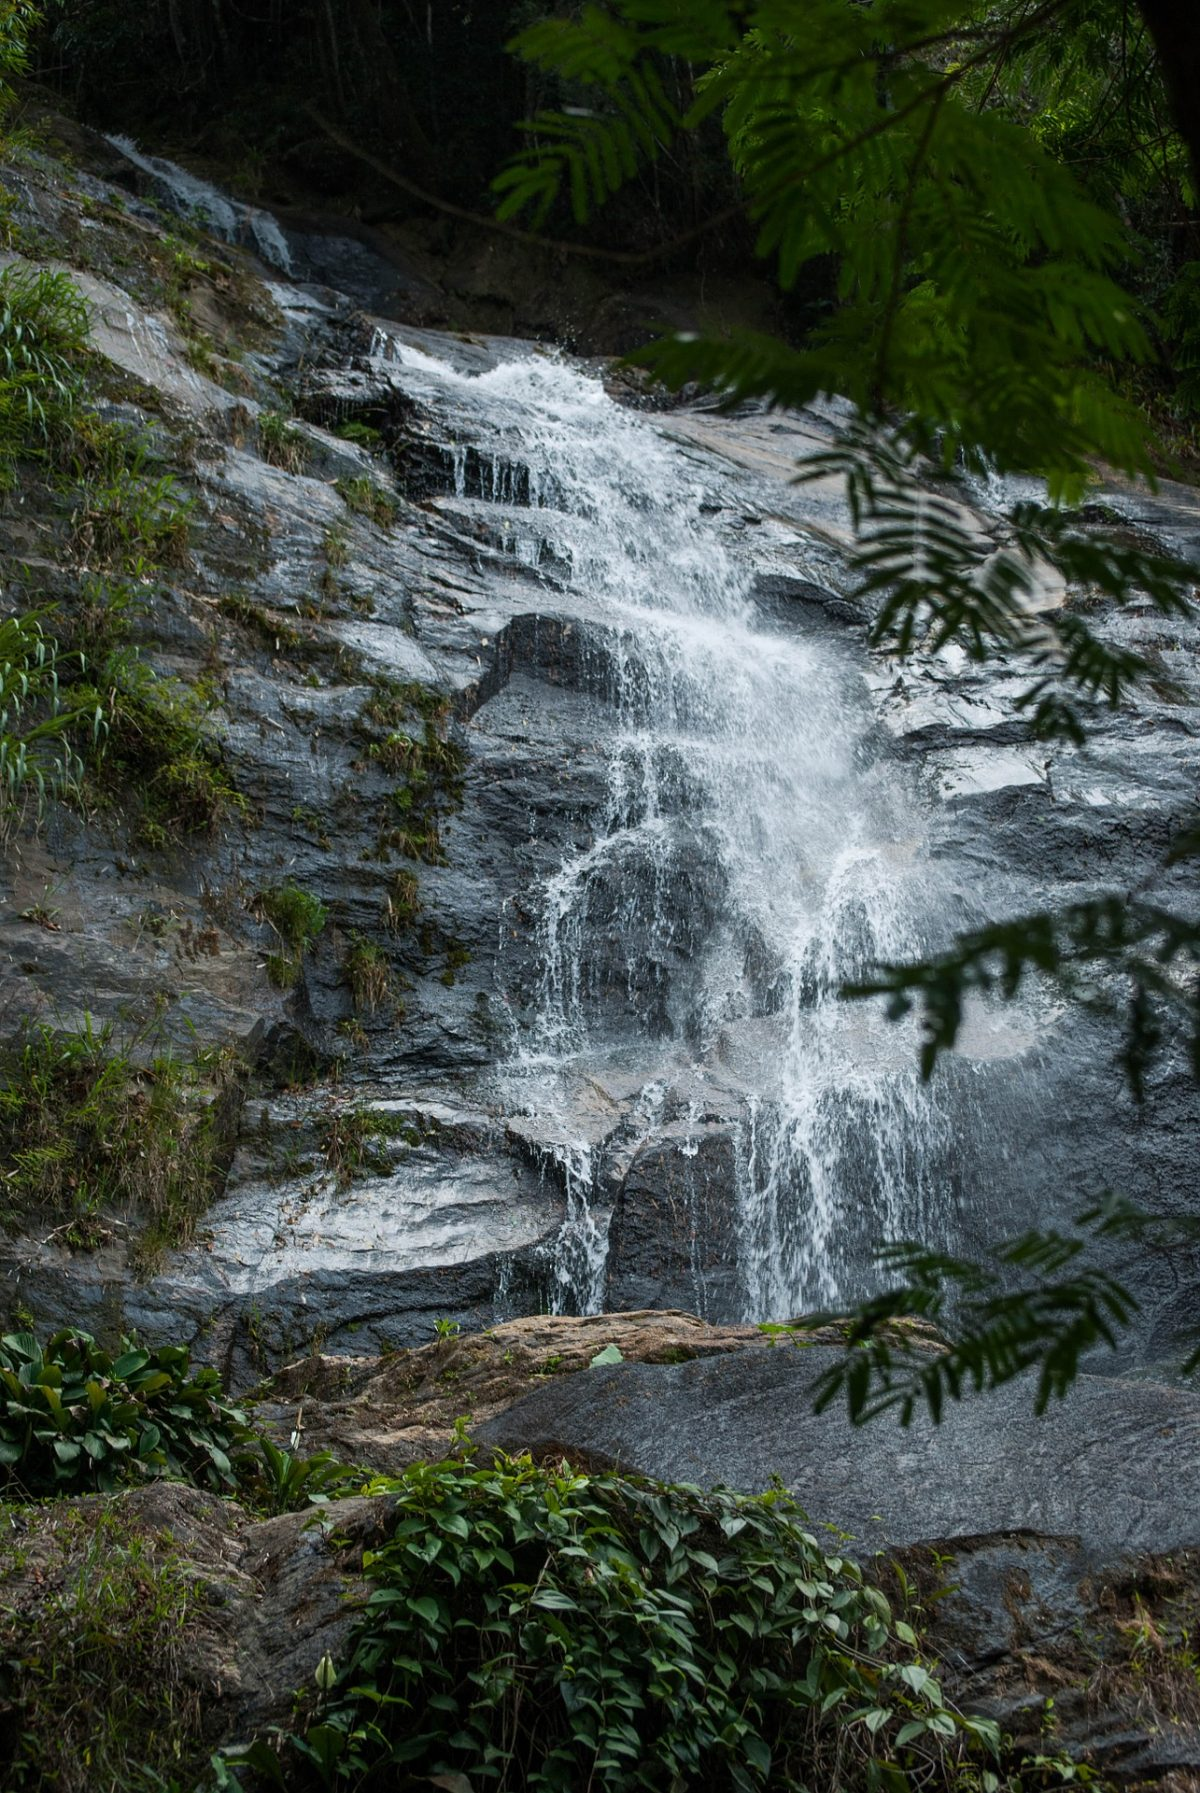 Tijuca is a tropical rainforest located within the city of Rio de Janeiro. It is considered the world's largest urban forest, covering some 39 km² of land.